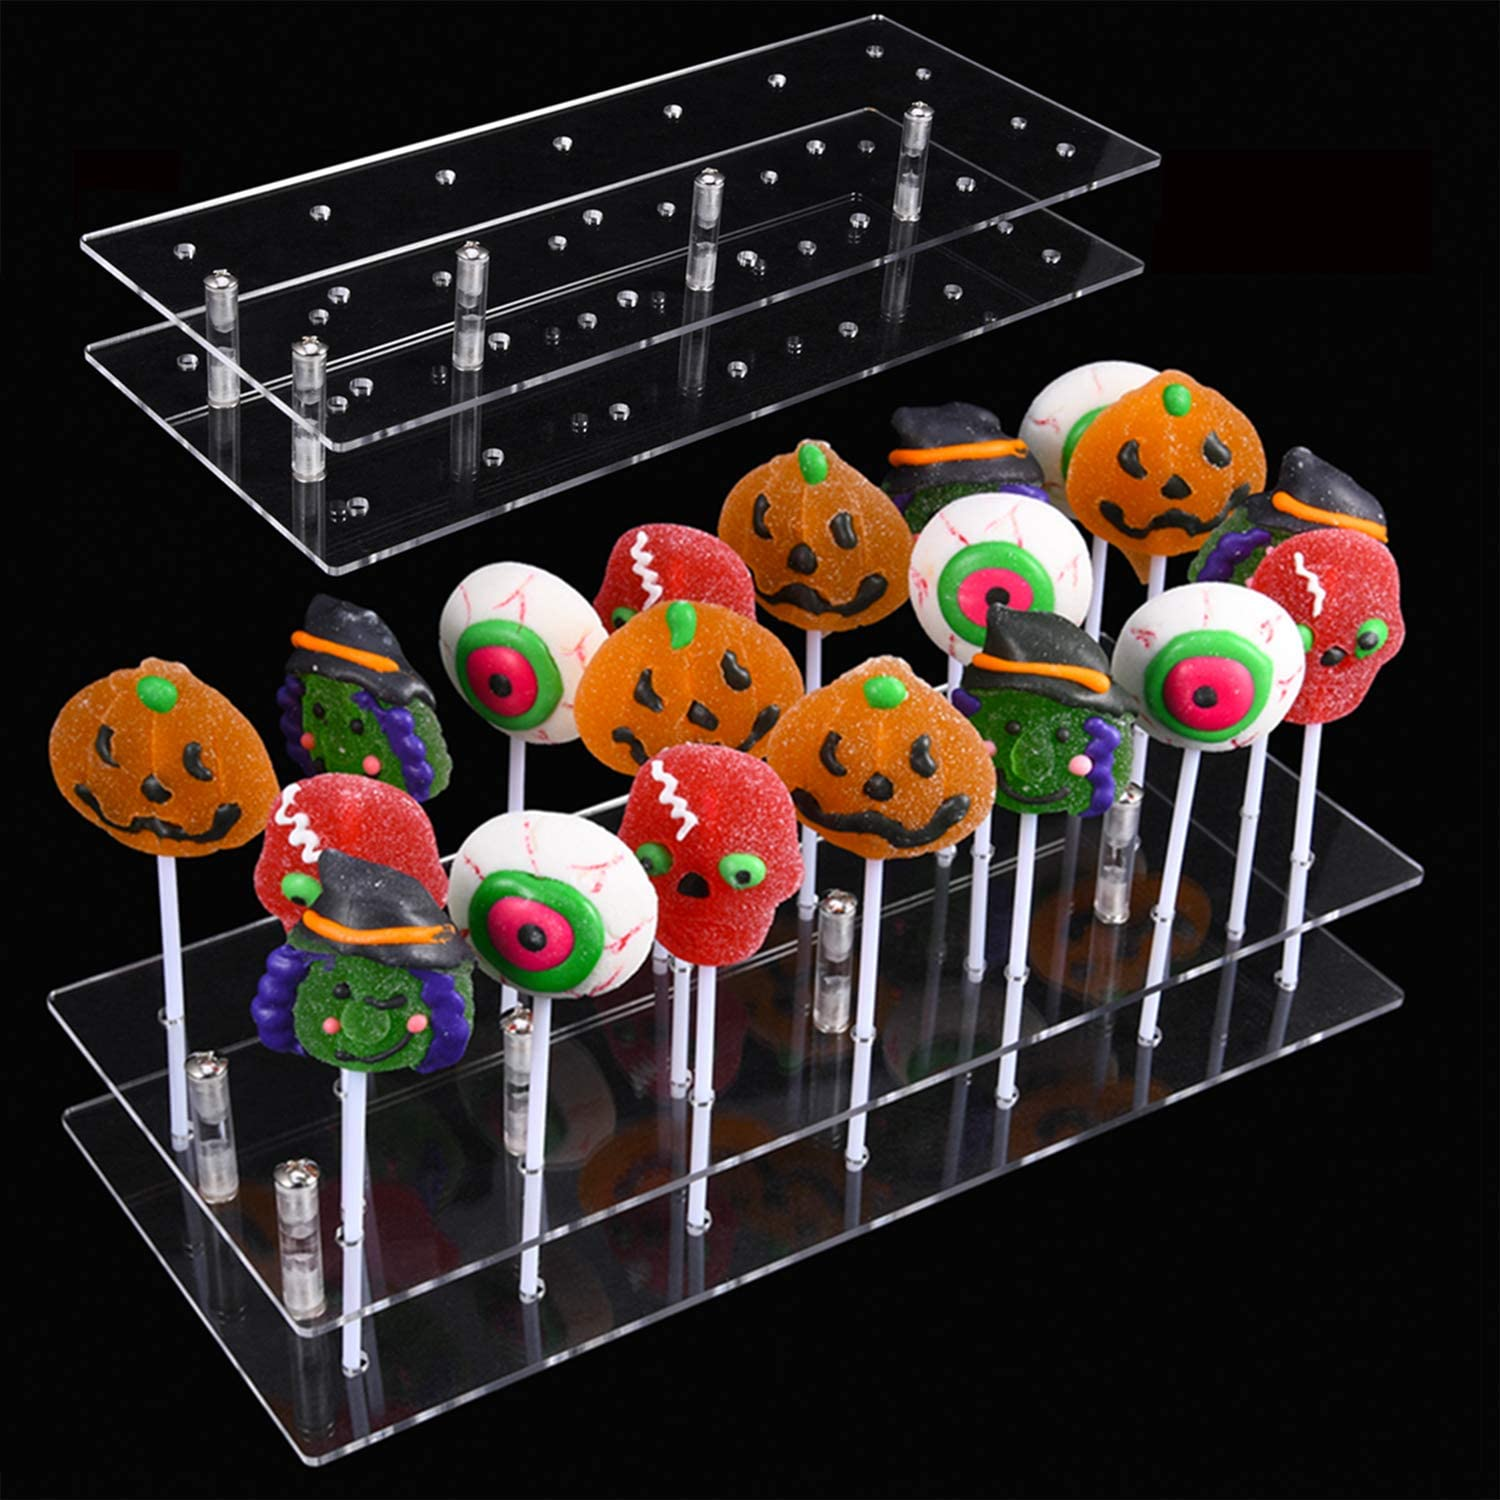 20 Hole Clear Acrylic Lollipop Display Stand Cake Pop Stand Candy Stand Holder Base for Birthday Party Halloween Decoration